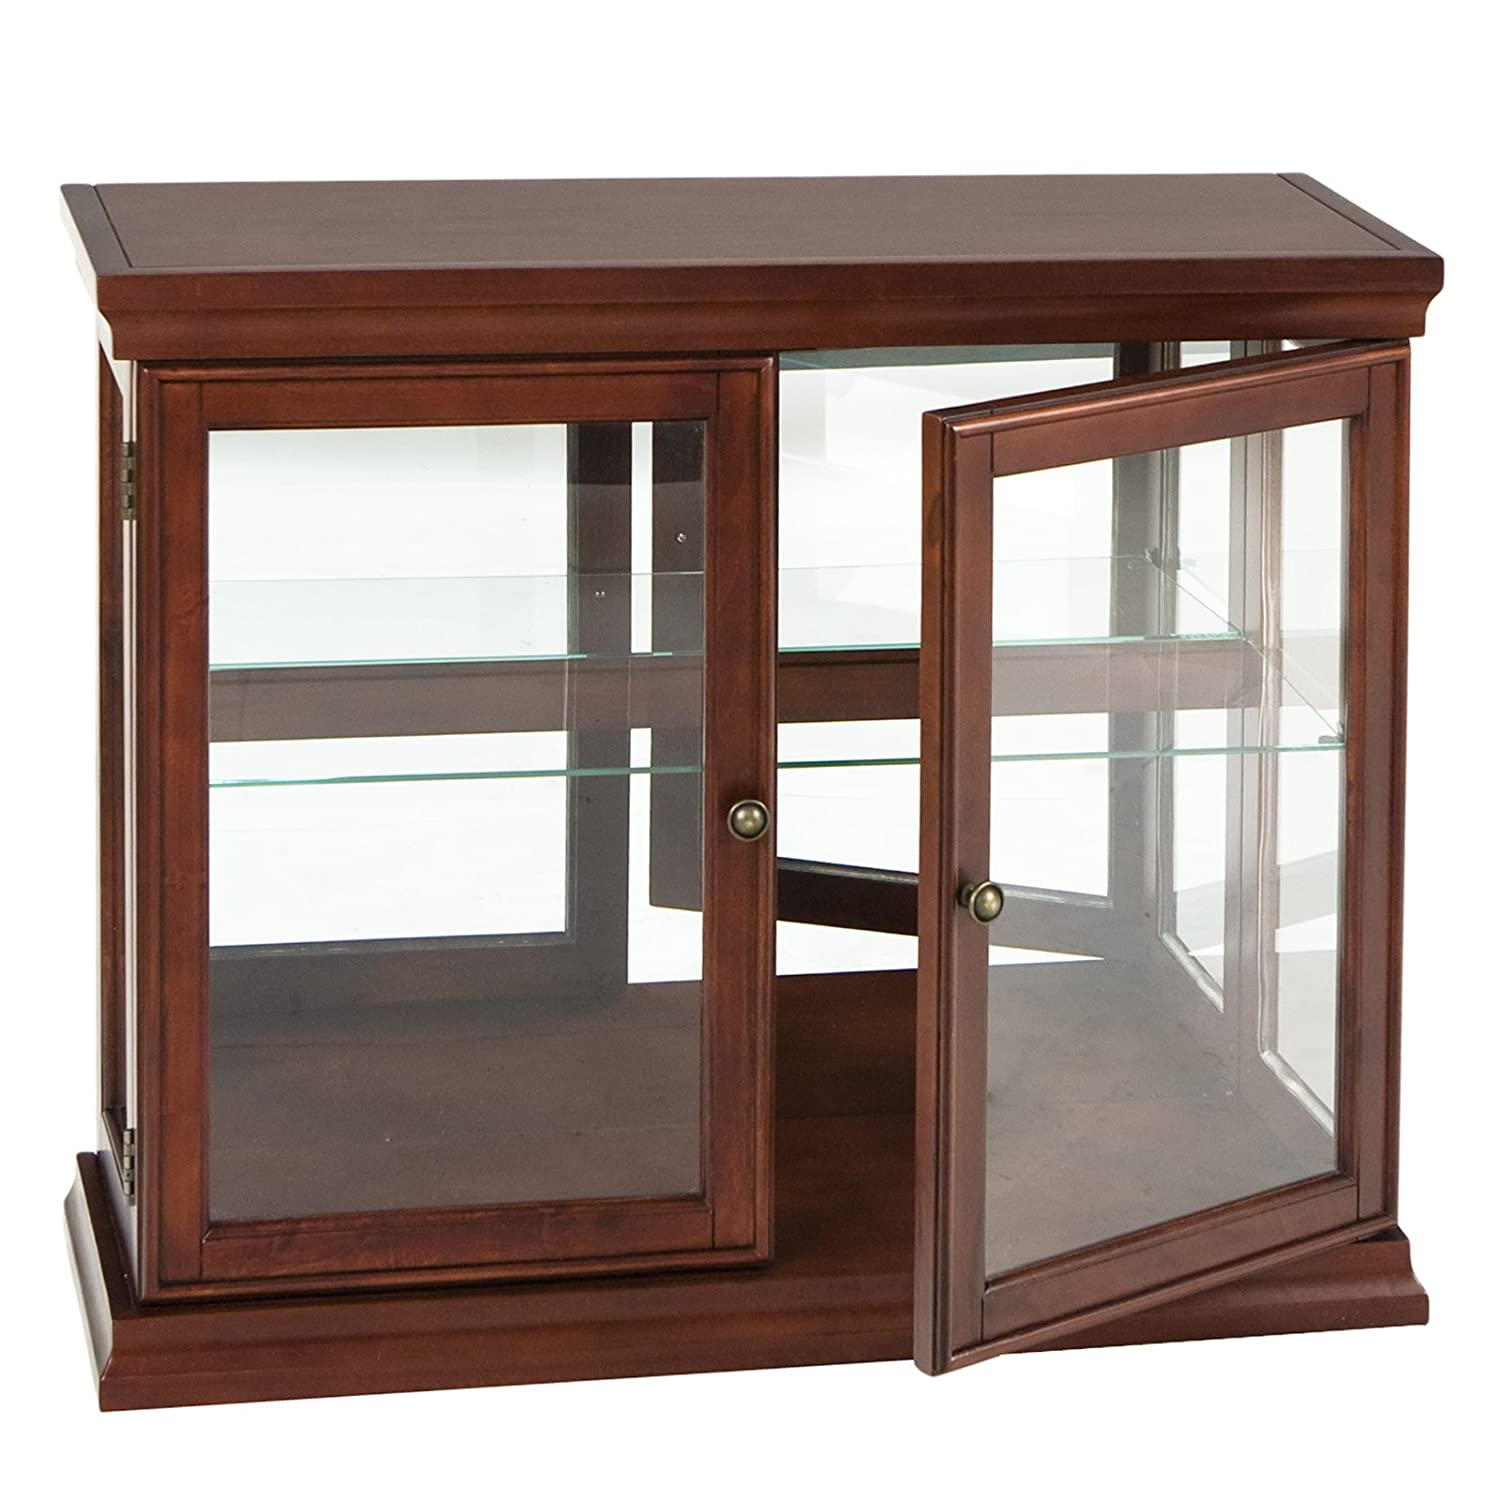 Amazon.com: Glass Door - Curio Cabinets / Living Room Furniture ...